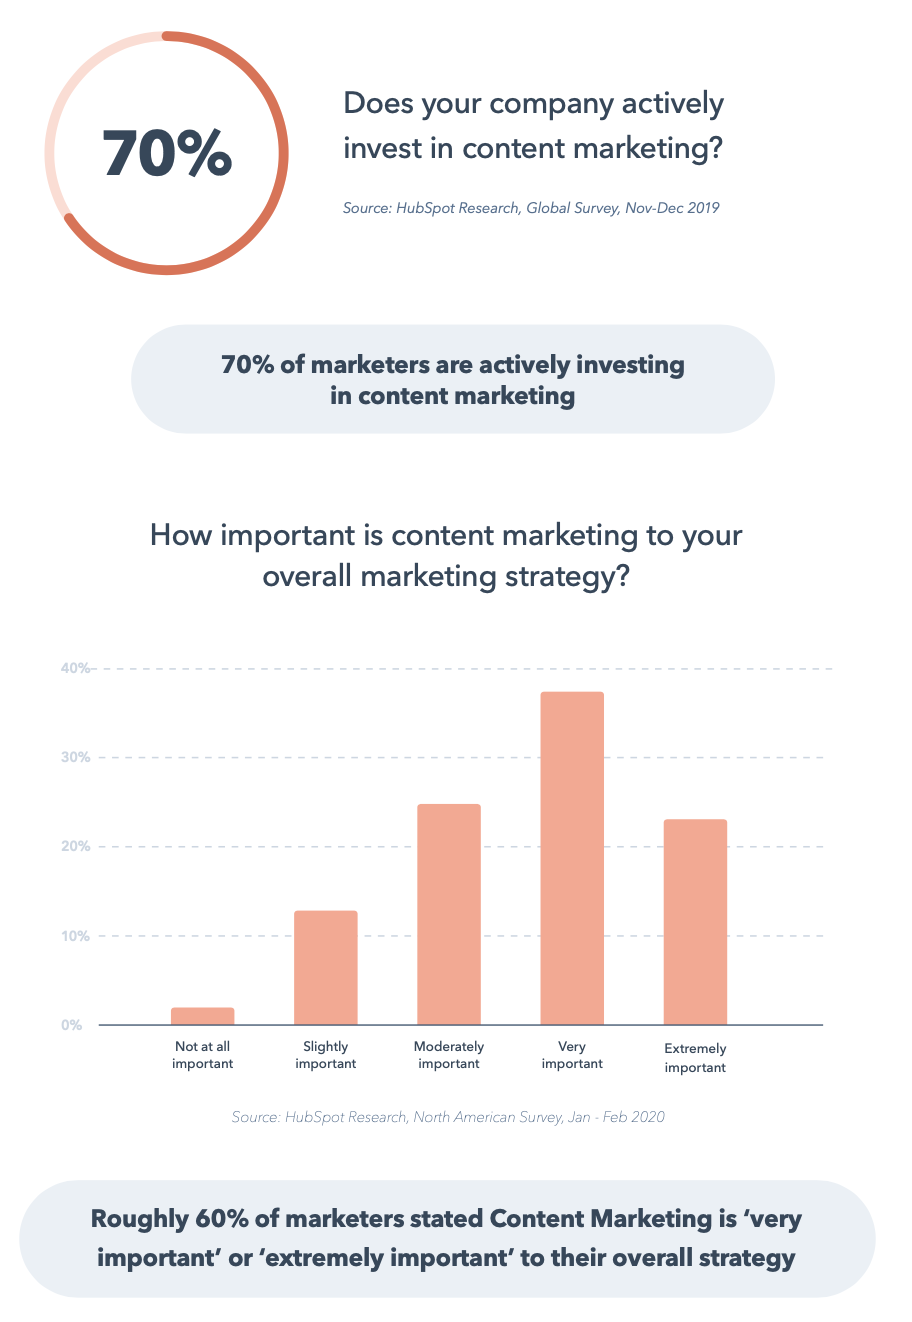 70% of marketers invest in content